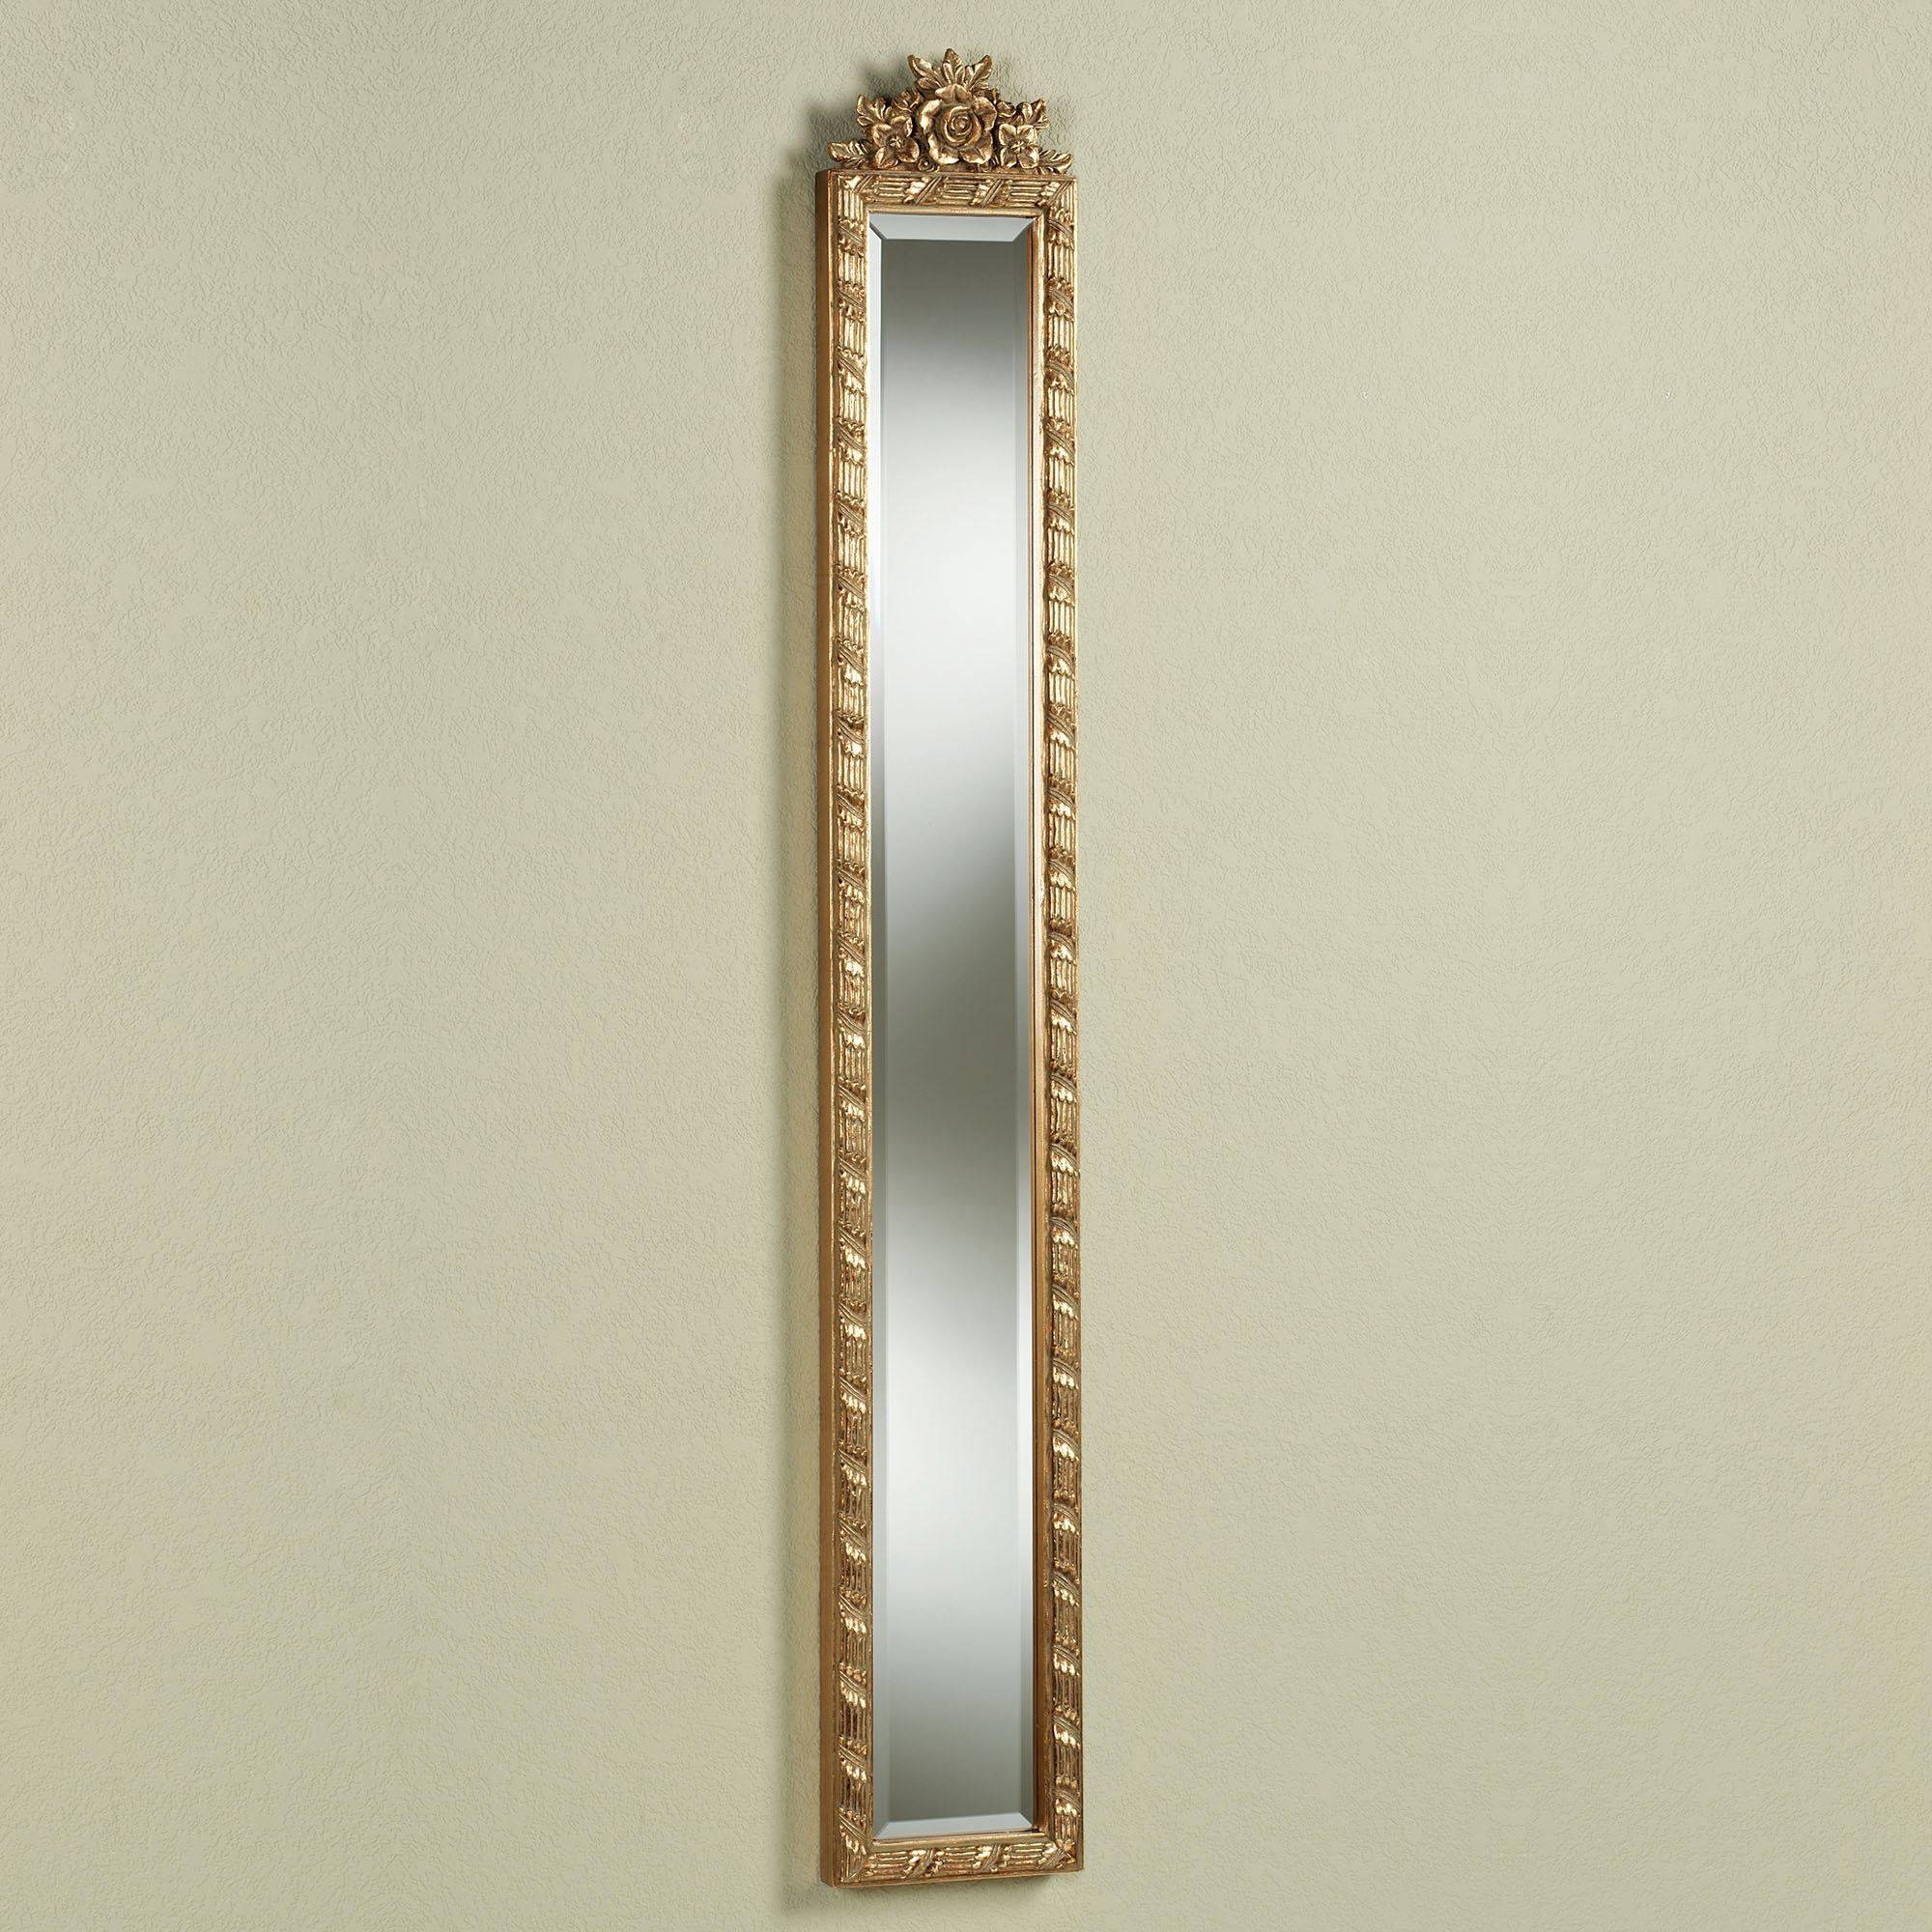 Giuliana Antique Gold Floral Wall Mirror Panel Throughout Long Gold Mirrors (View 16 of 25)